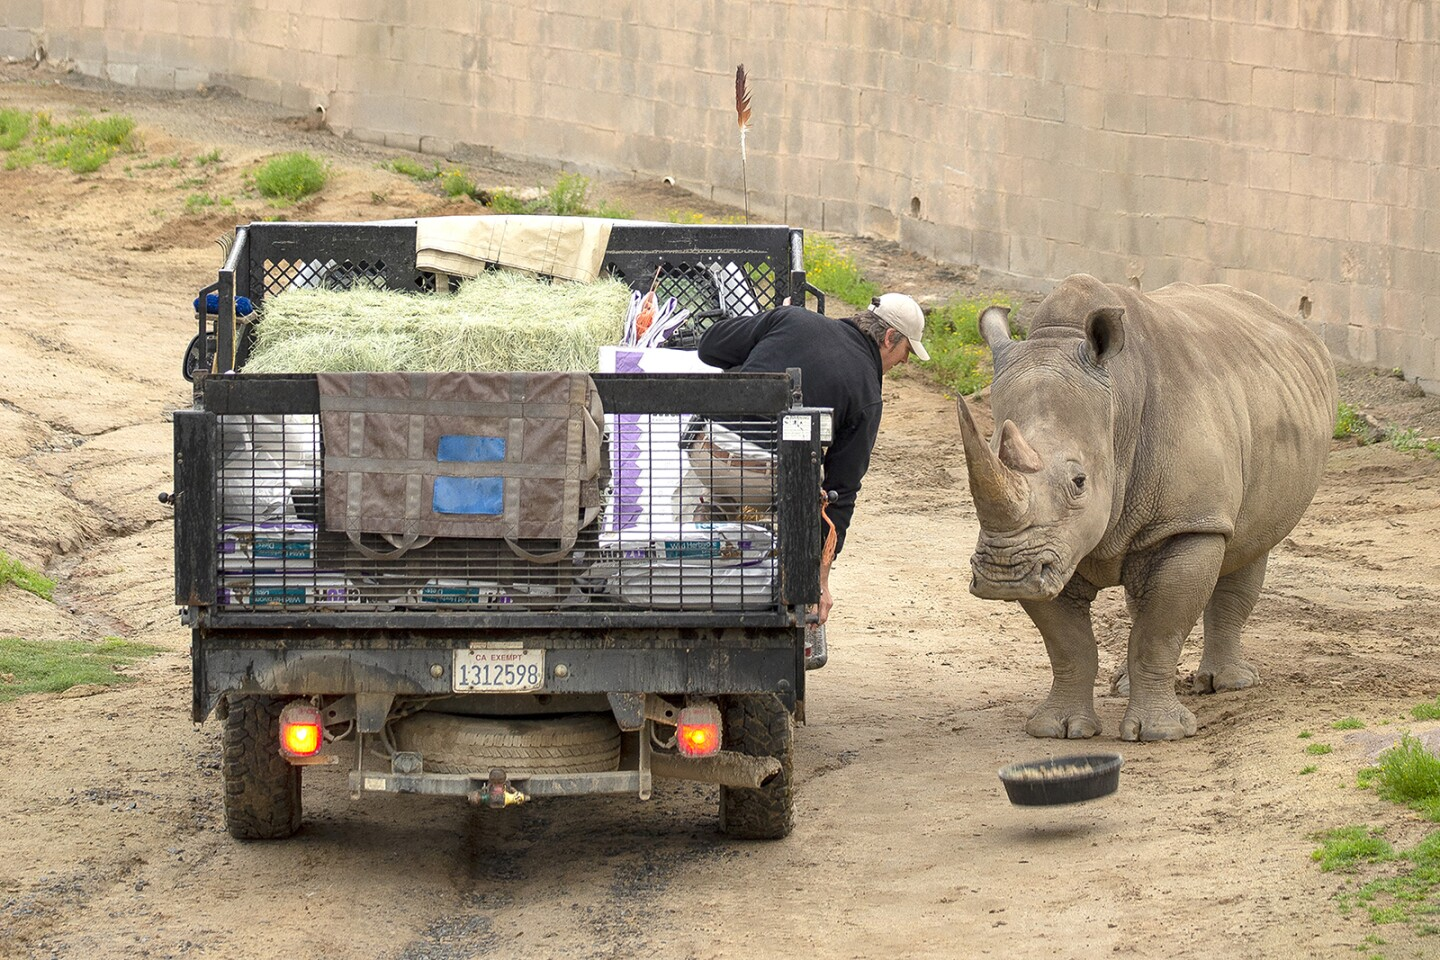 A rhino gets a meal hand delivered. | Taken on March 25, 2020 by Tammy Spratt/San Diego Zoo